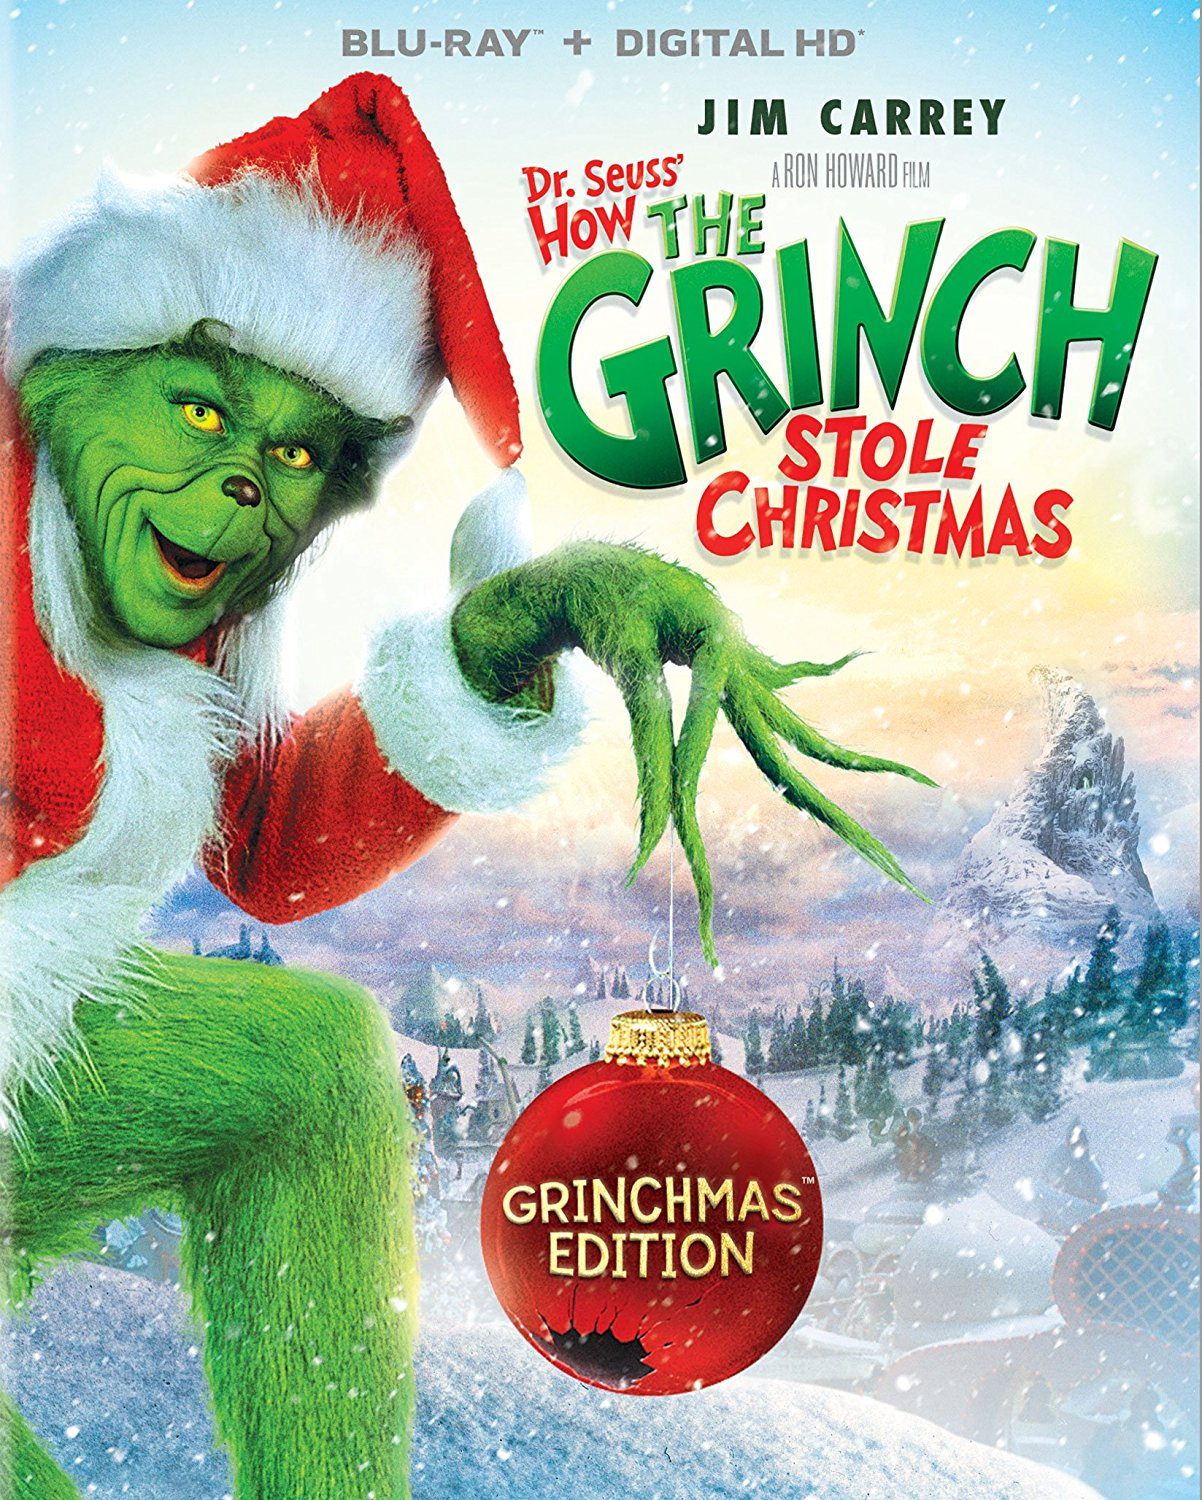 dr seuss how the grinch stole christmas grinchmas edition hip homeschool moms - How The Grinch Stole Christmas 2014